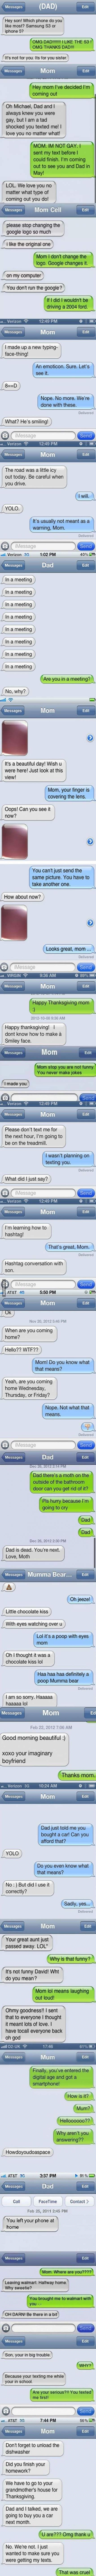 Best Funny Texts Teenagers Parents Mom 70+ Ideas   - Funnies - #Funnies #Funny #...